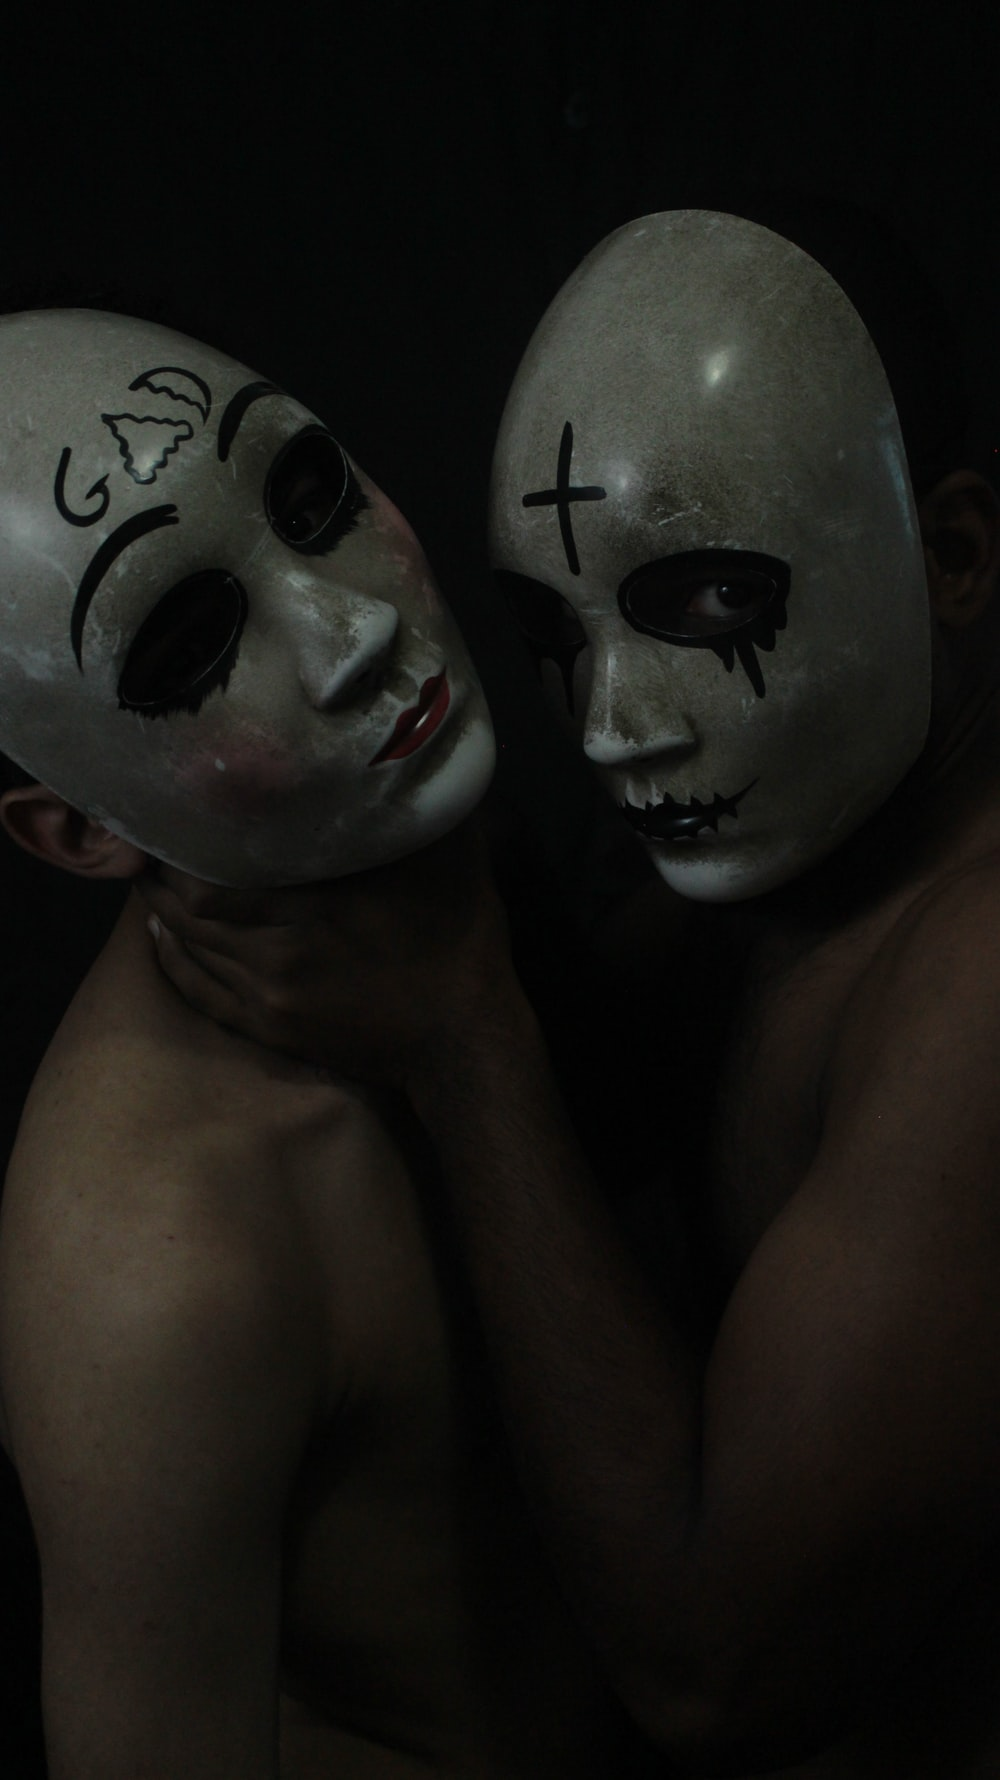 2 person with black and white mask